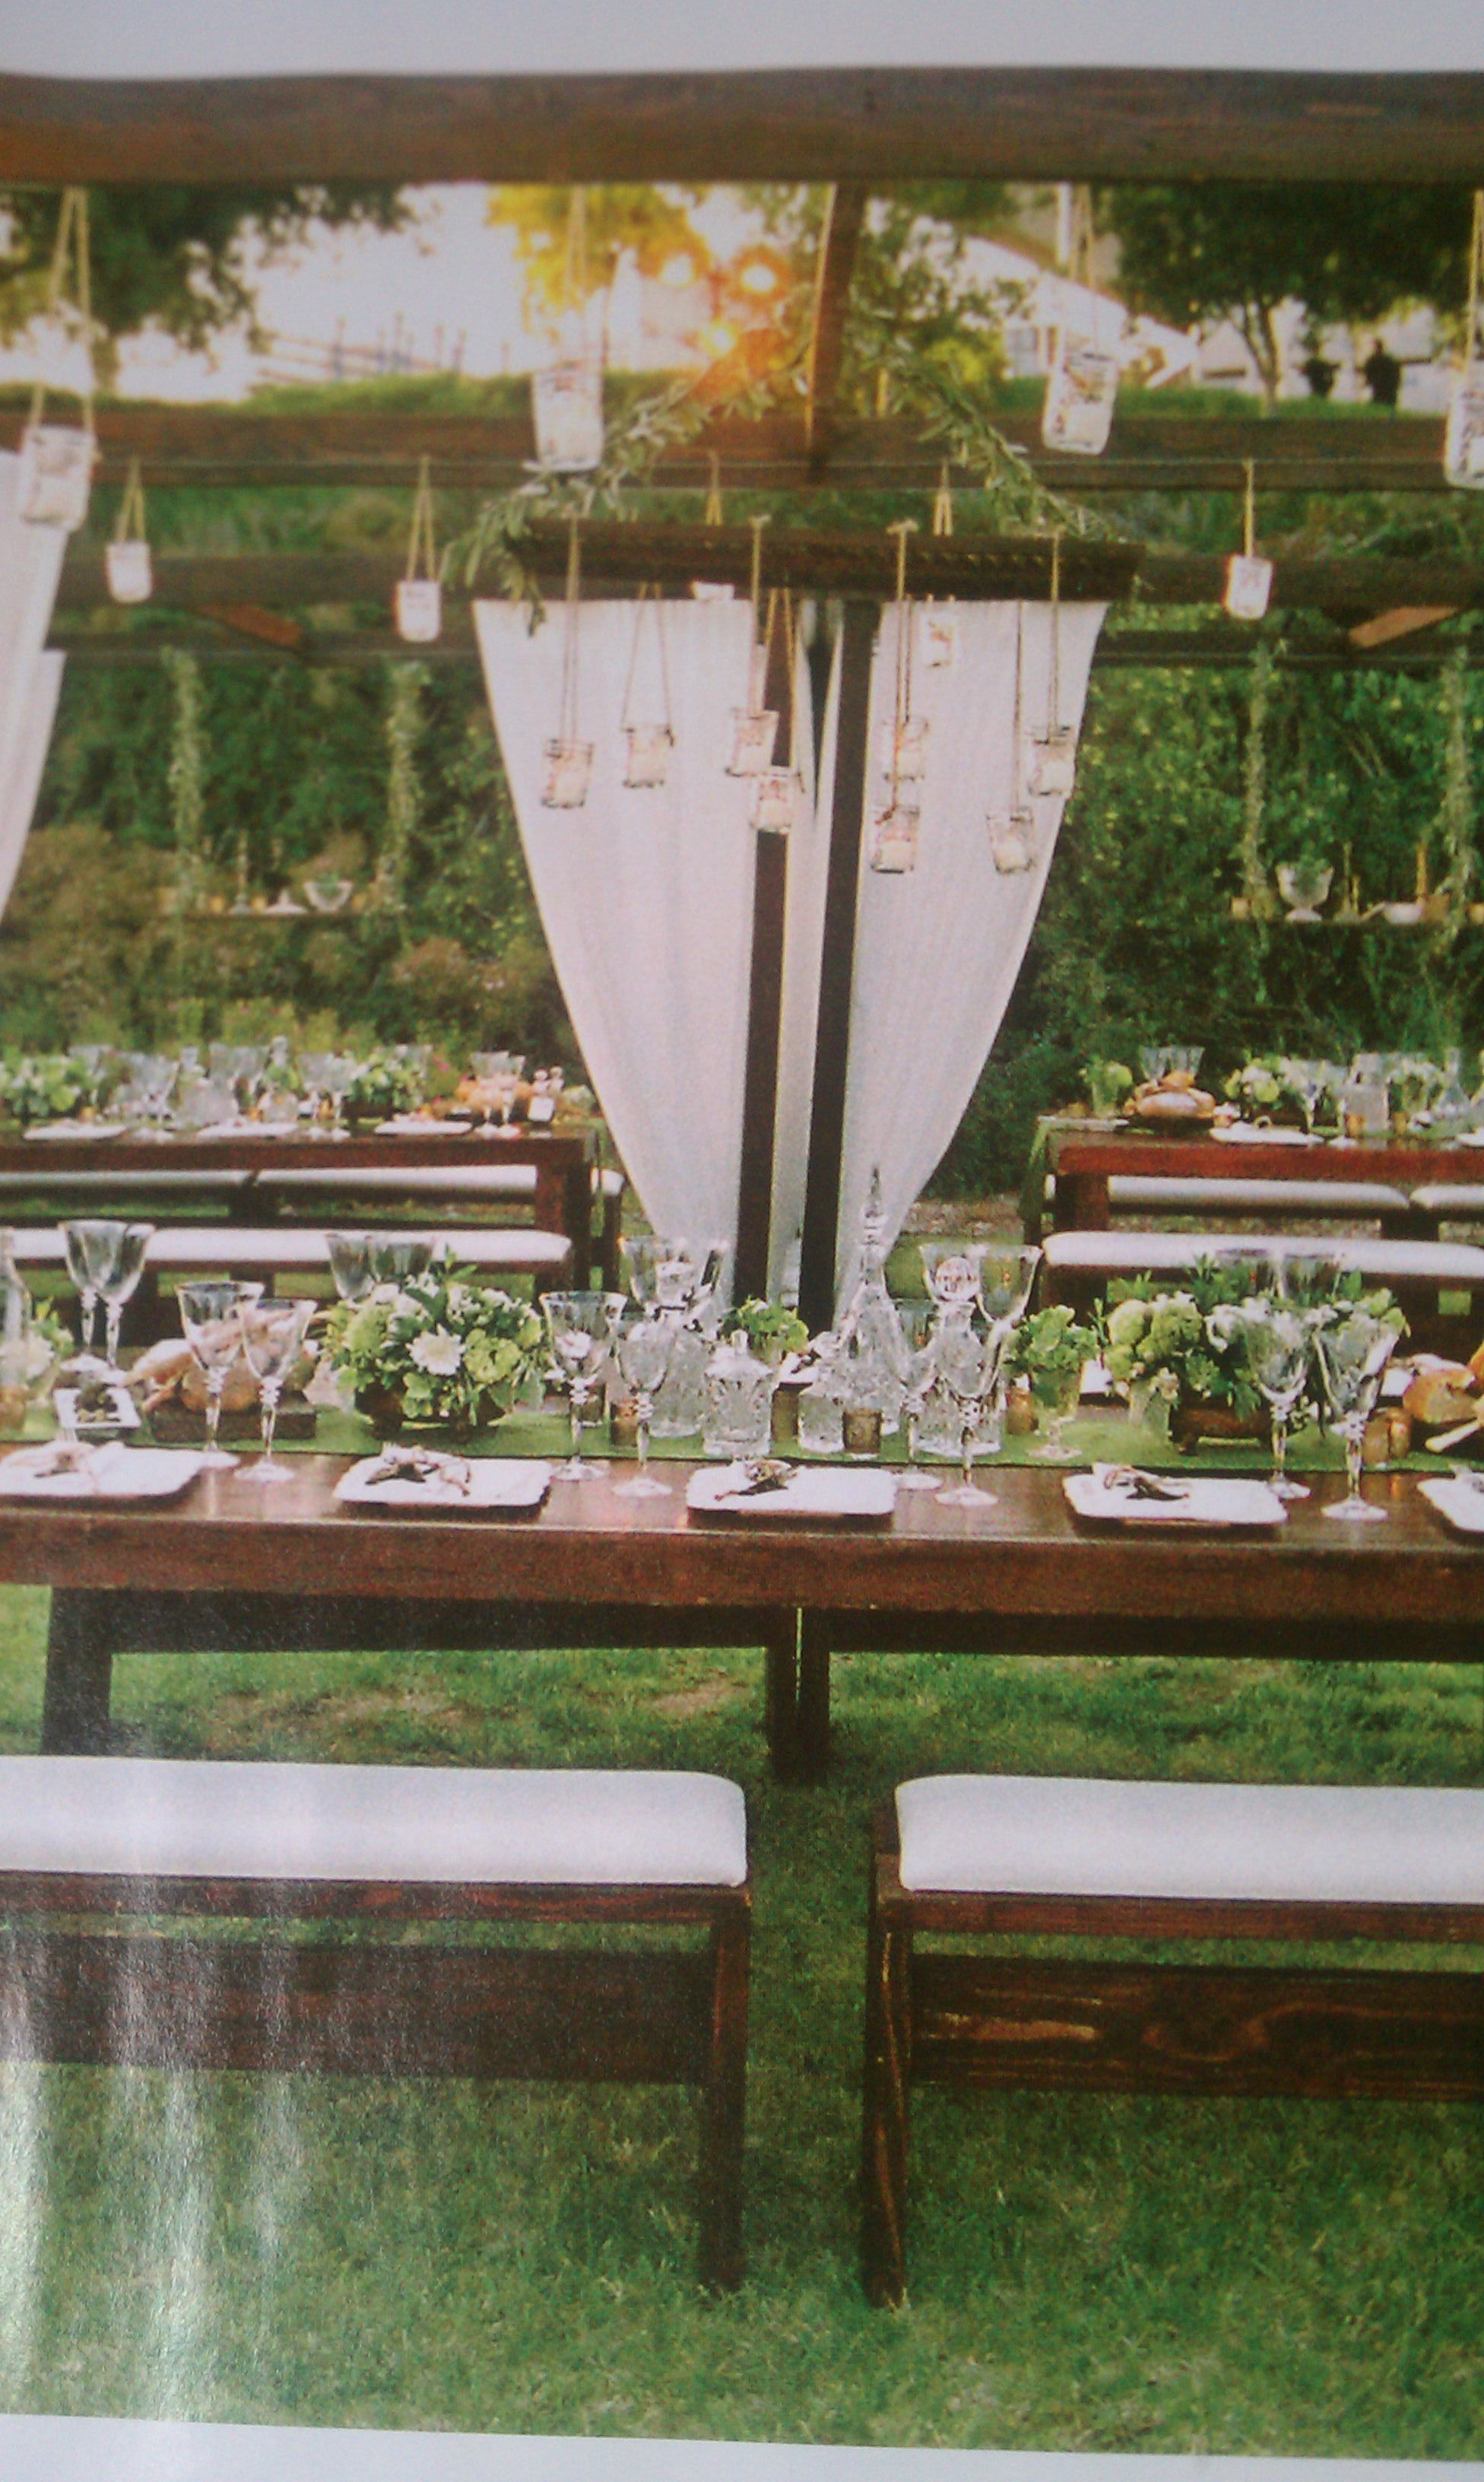 Table idea for Five Crowns styled wedding